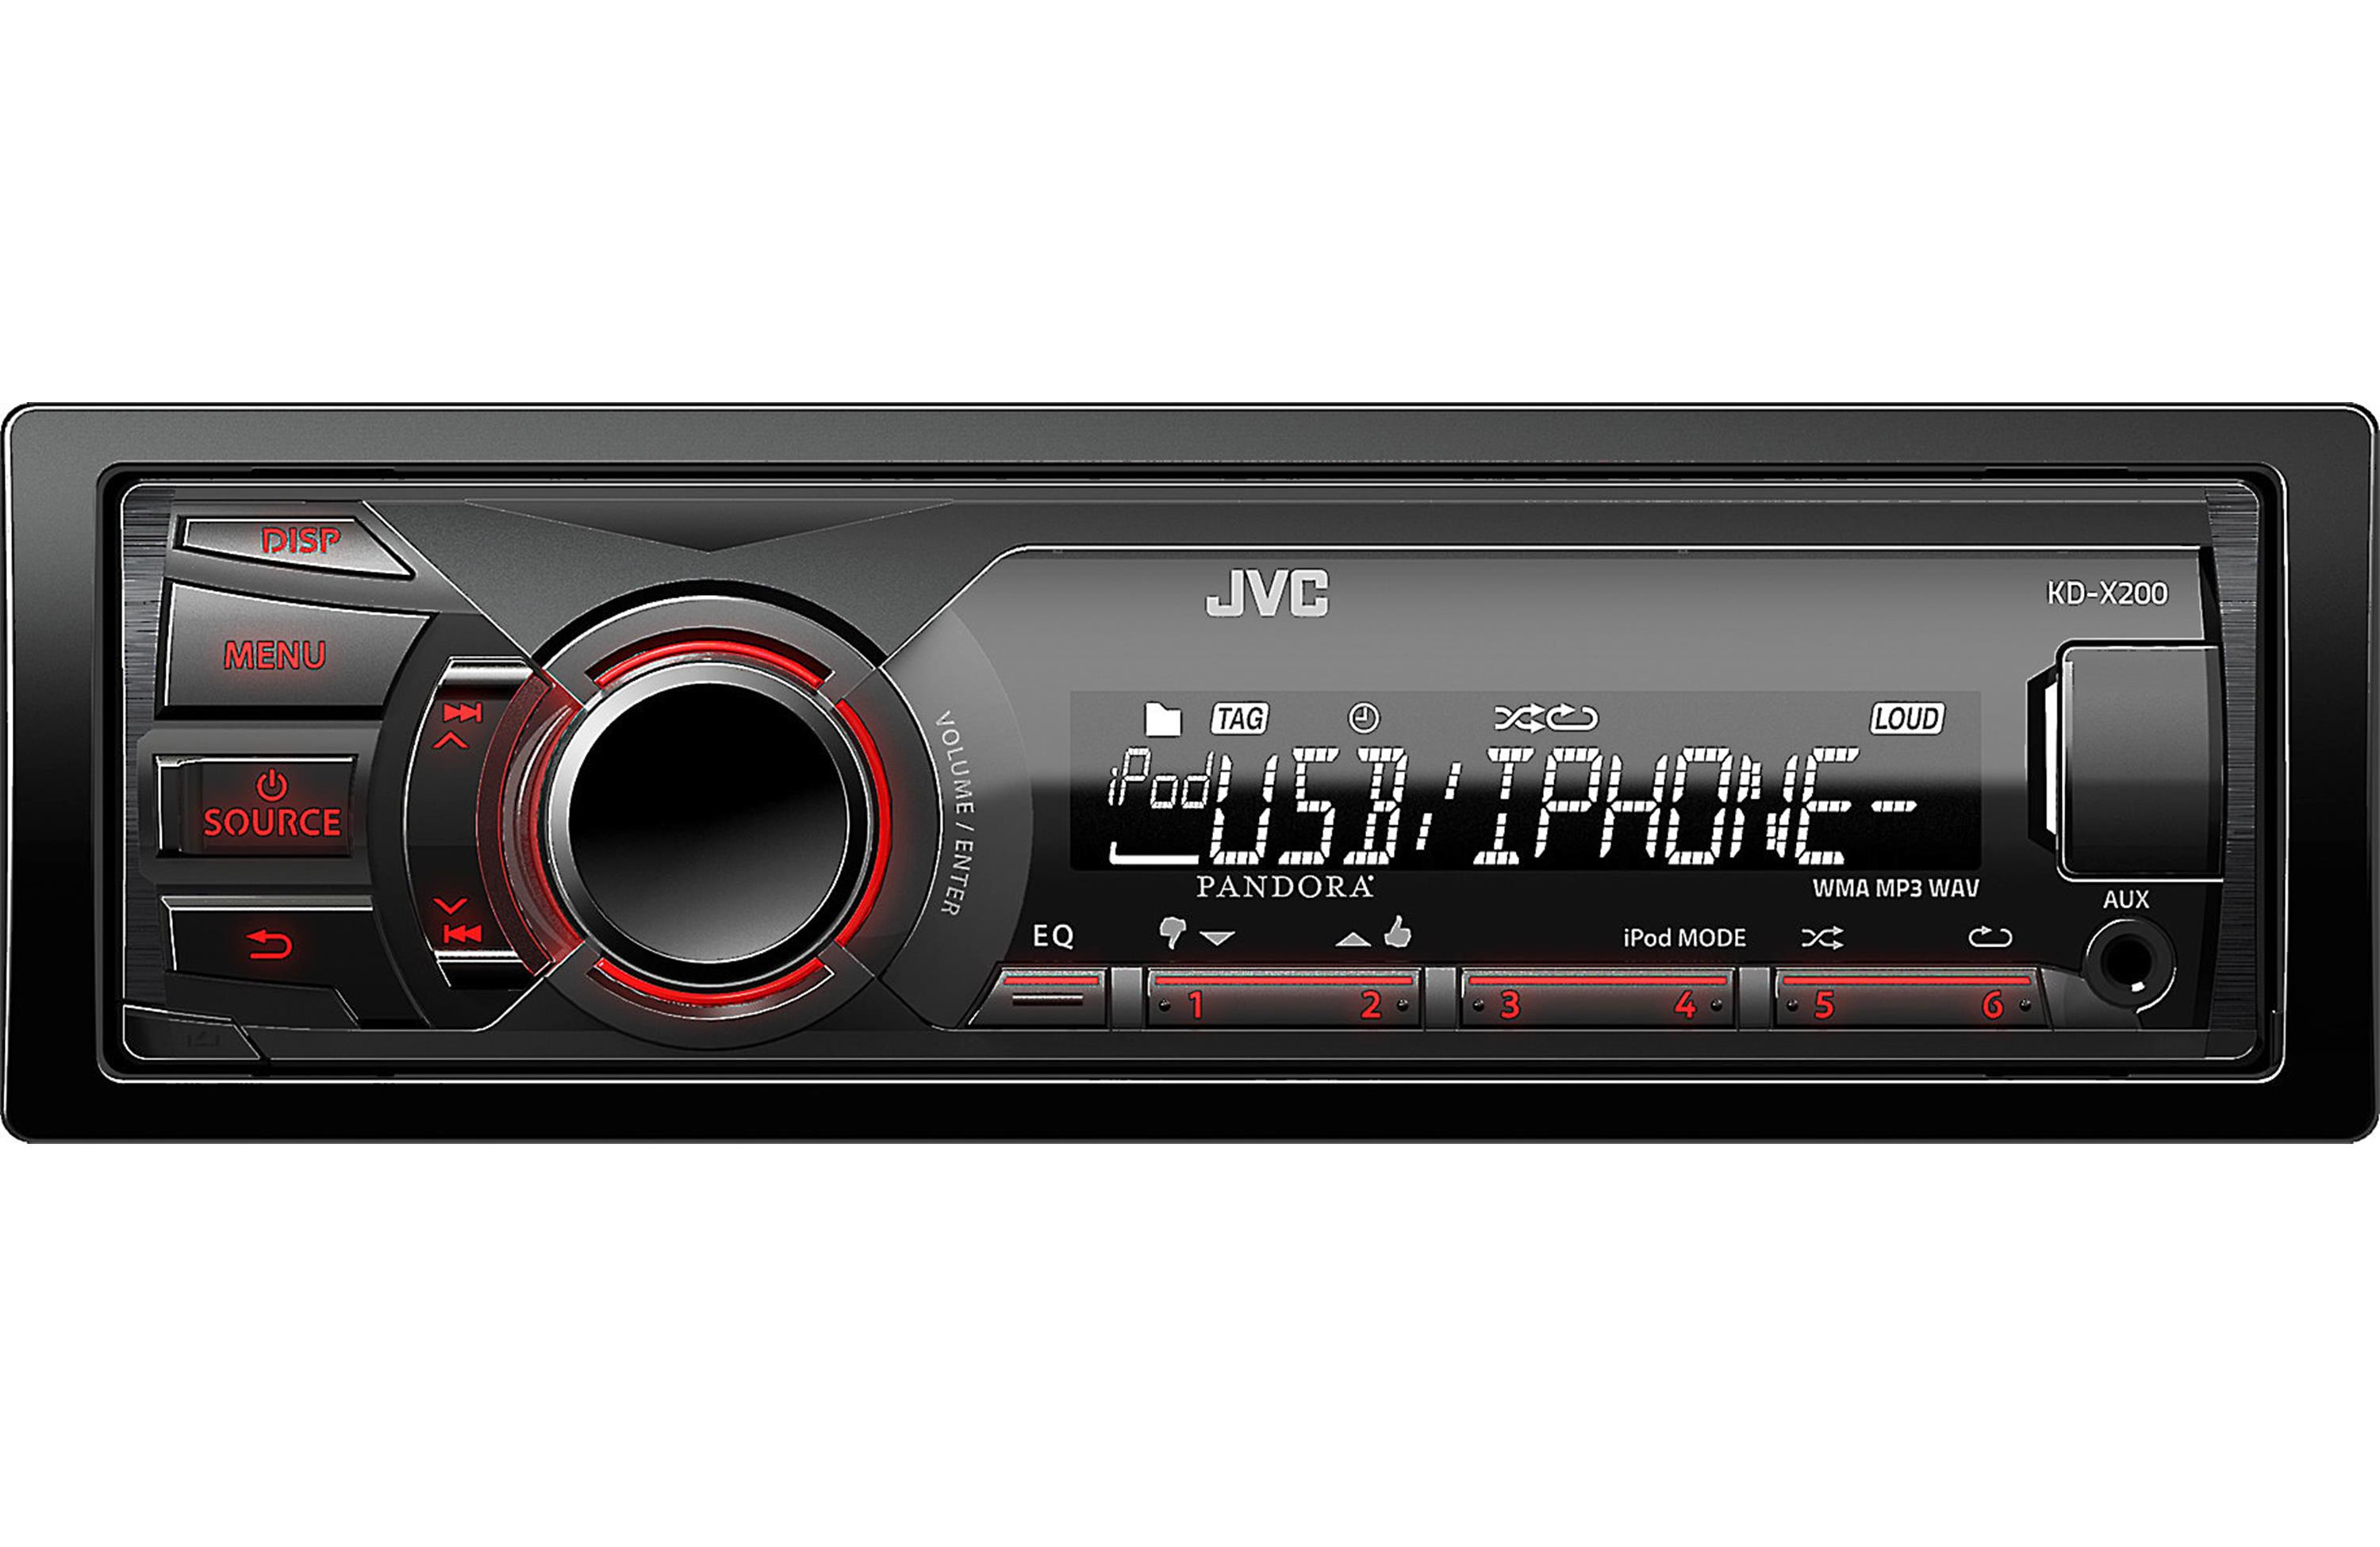 Jvc Kd X250bt Wiring Diagram Free Download Radio Moreover Panasonic Car Stereo X200 Single Din Digital Media Receiver W Usb Ipod Furthermore Q See As Well